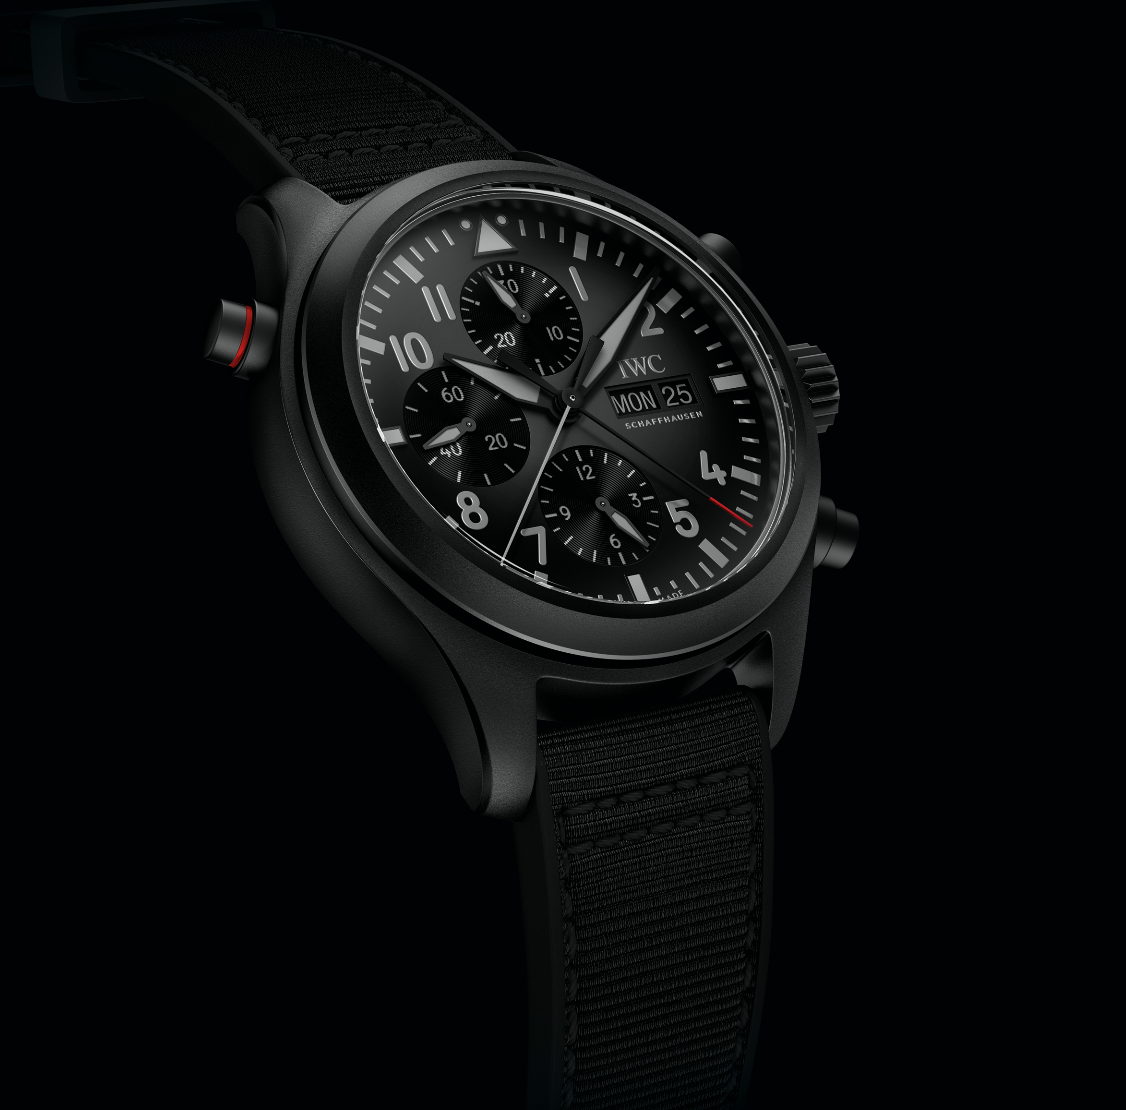 Pilots Watch Double Chronograph Ceratanium